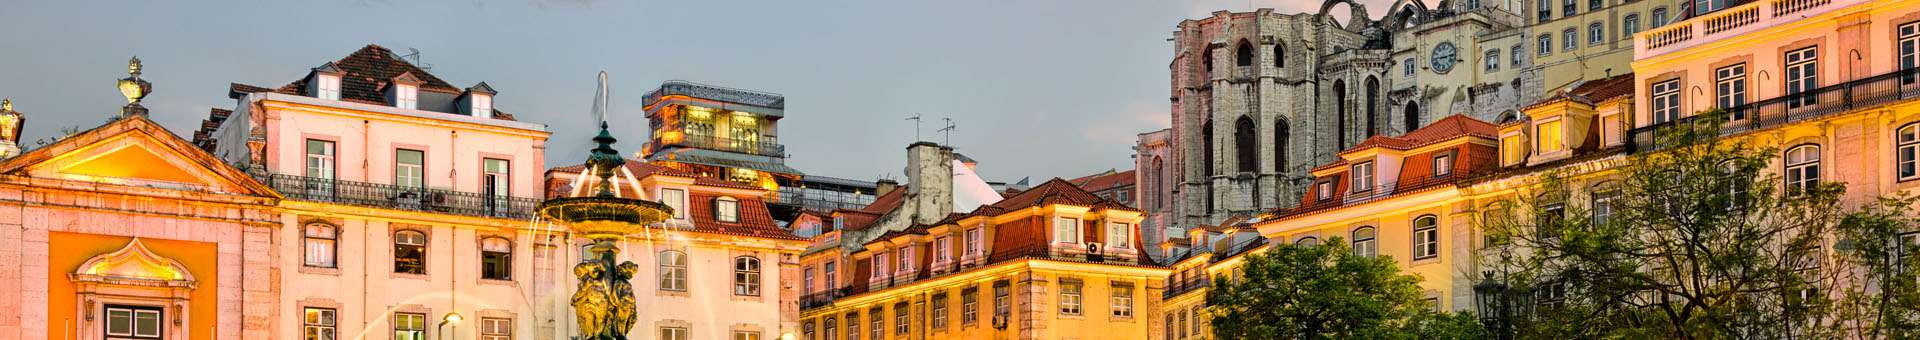 Search Whois information of domain names in Portugal